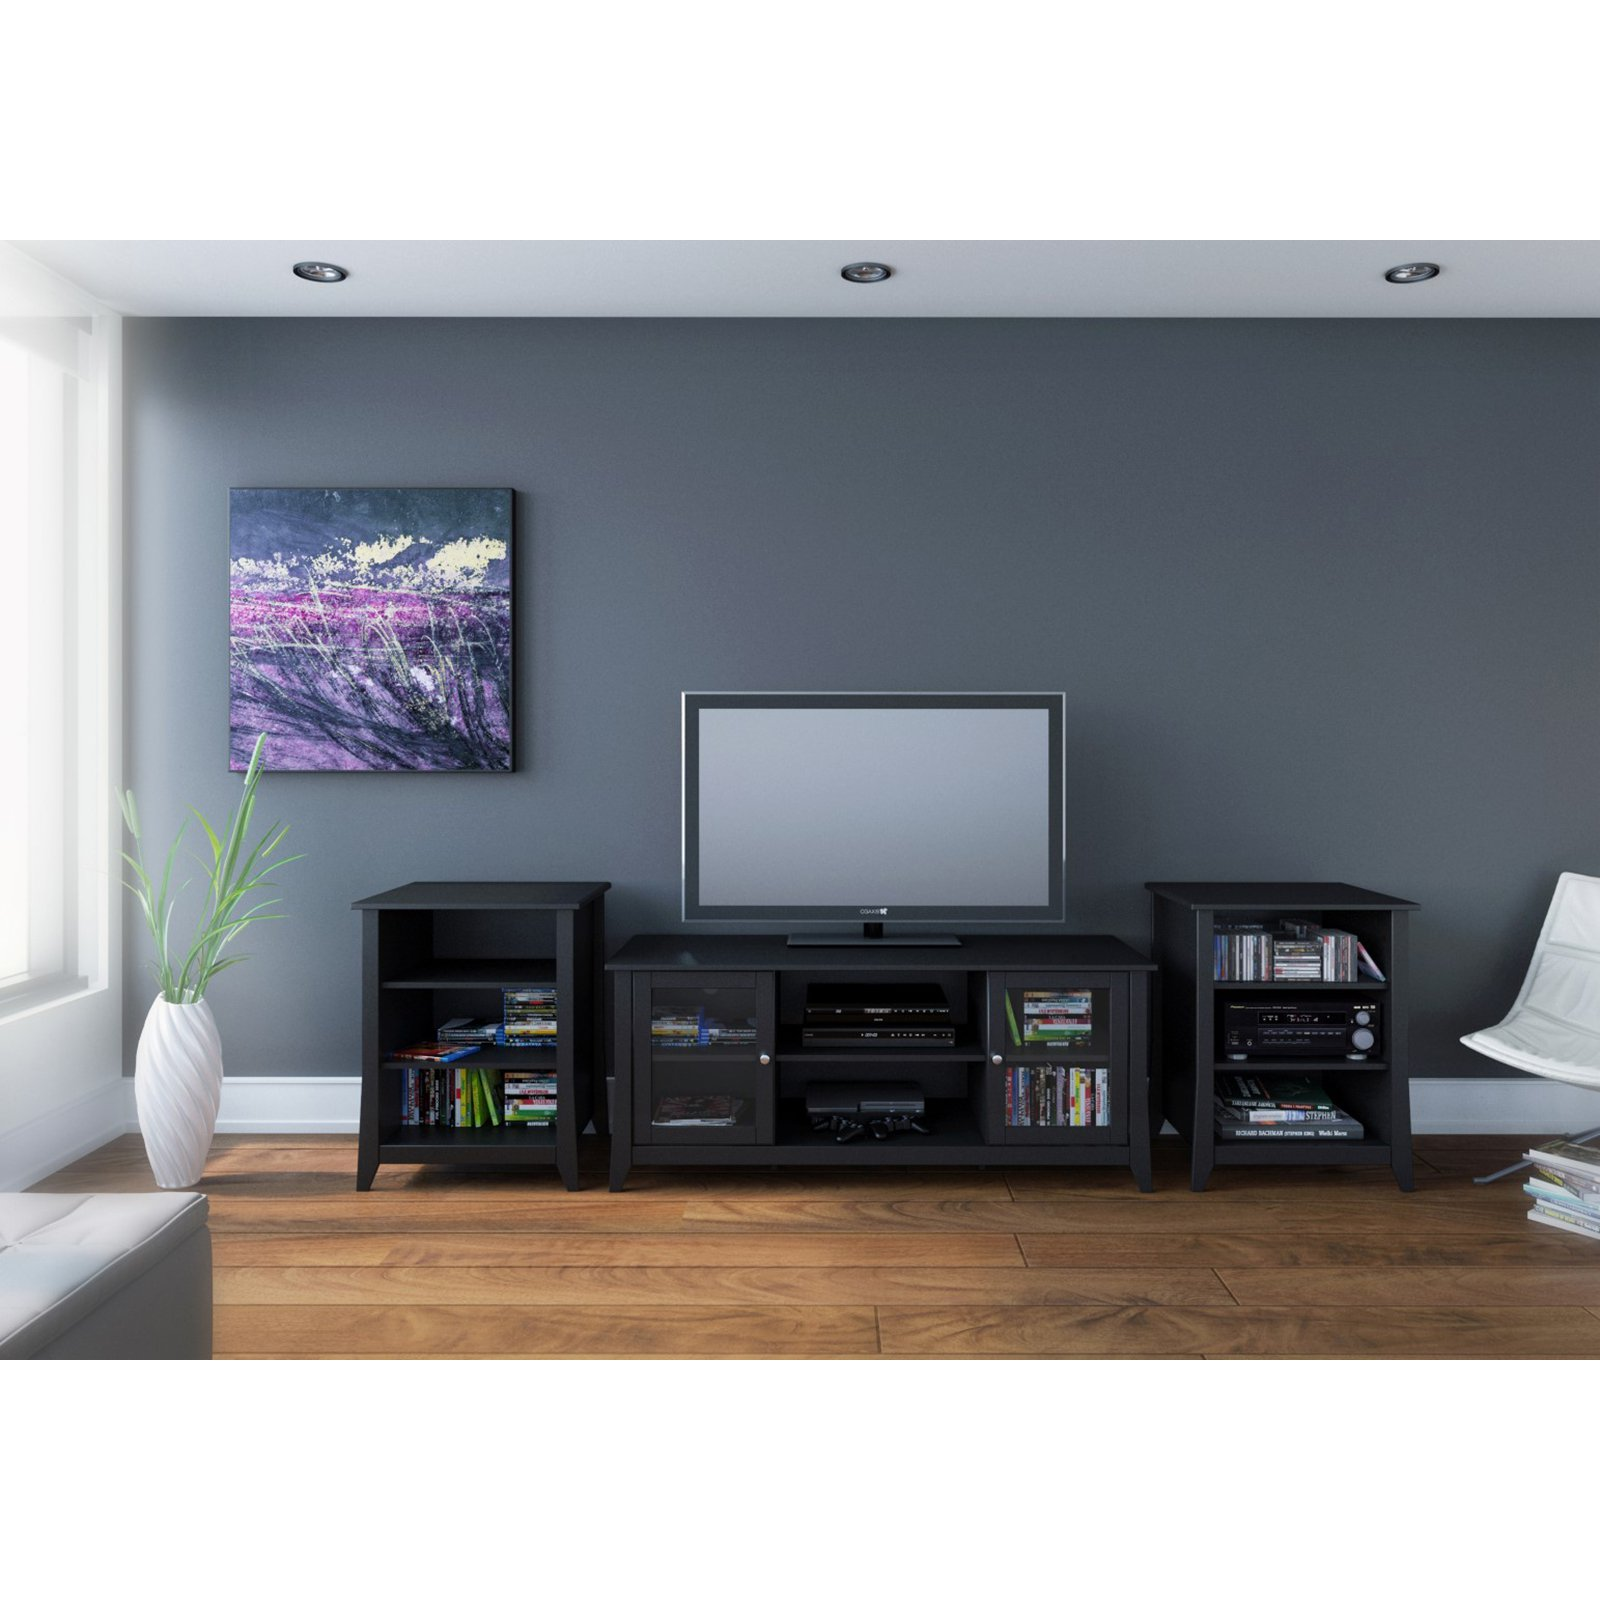 Megalak Finition Tuxedo 58 in. TV Console with Stereo Cabinets - Black